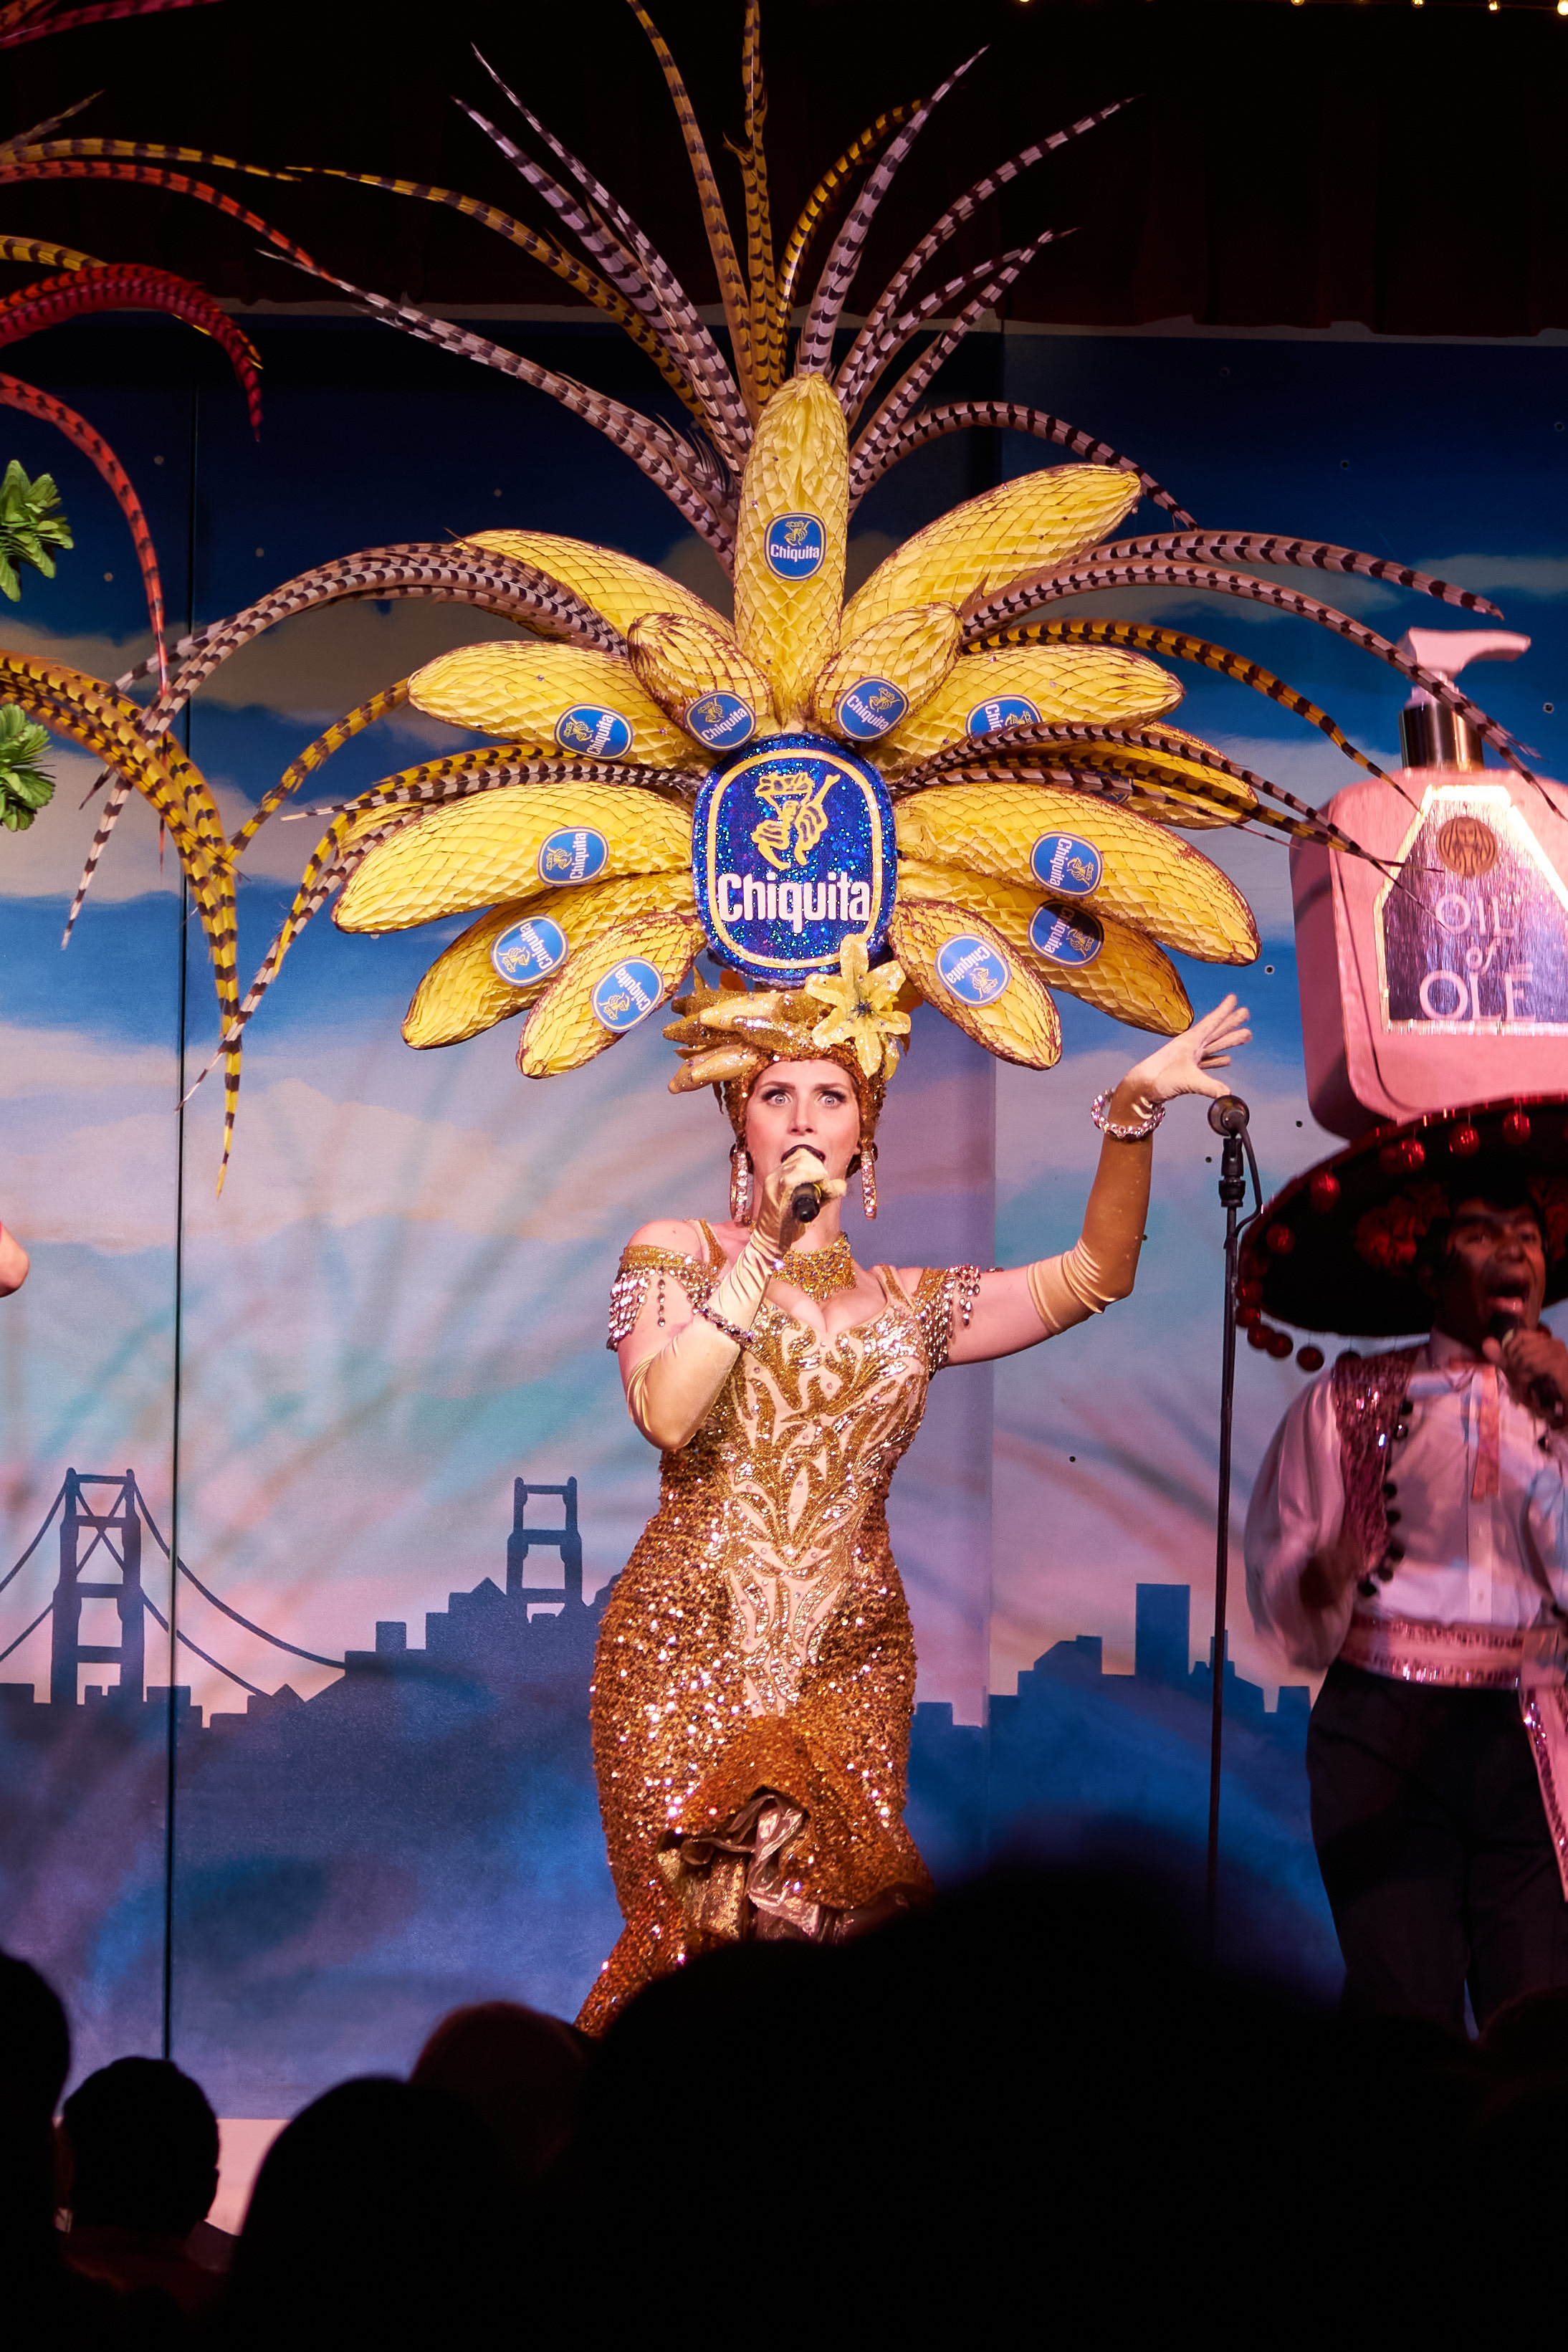 Beach Blanket Babylon 2015 as Chiquita Banana